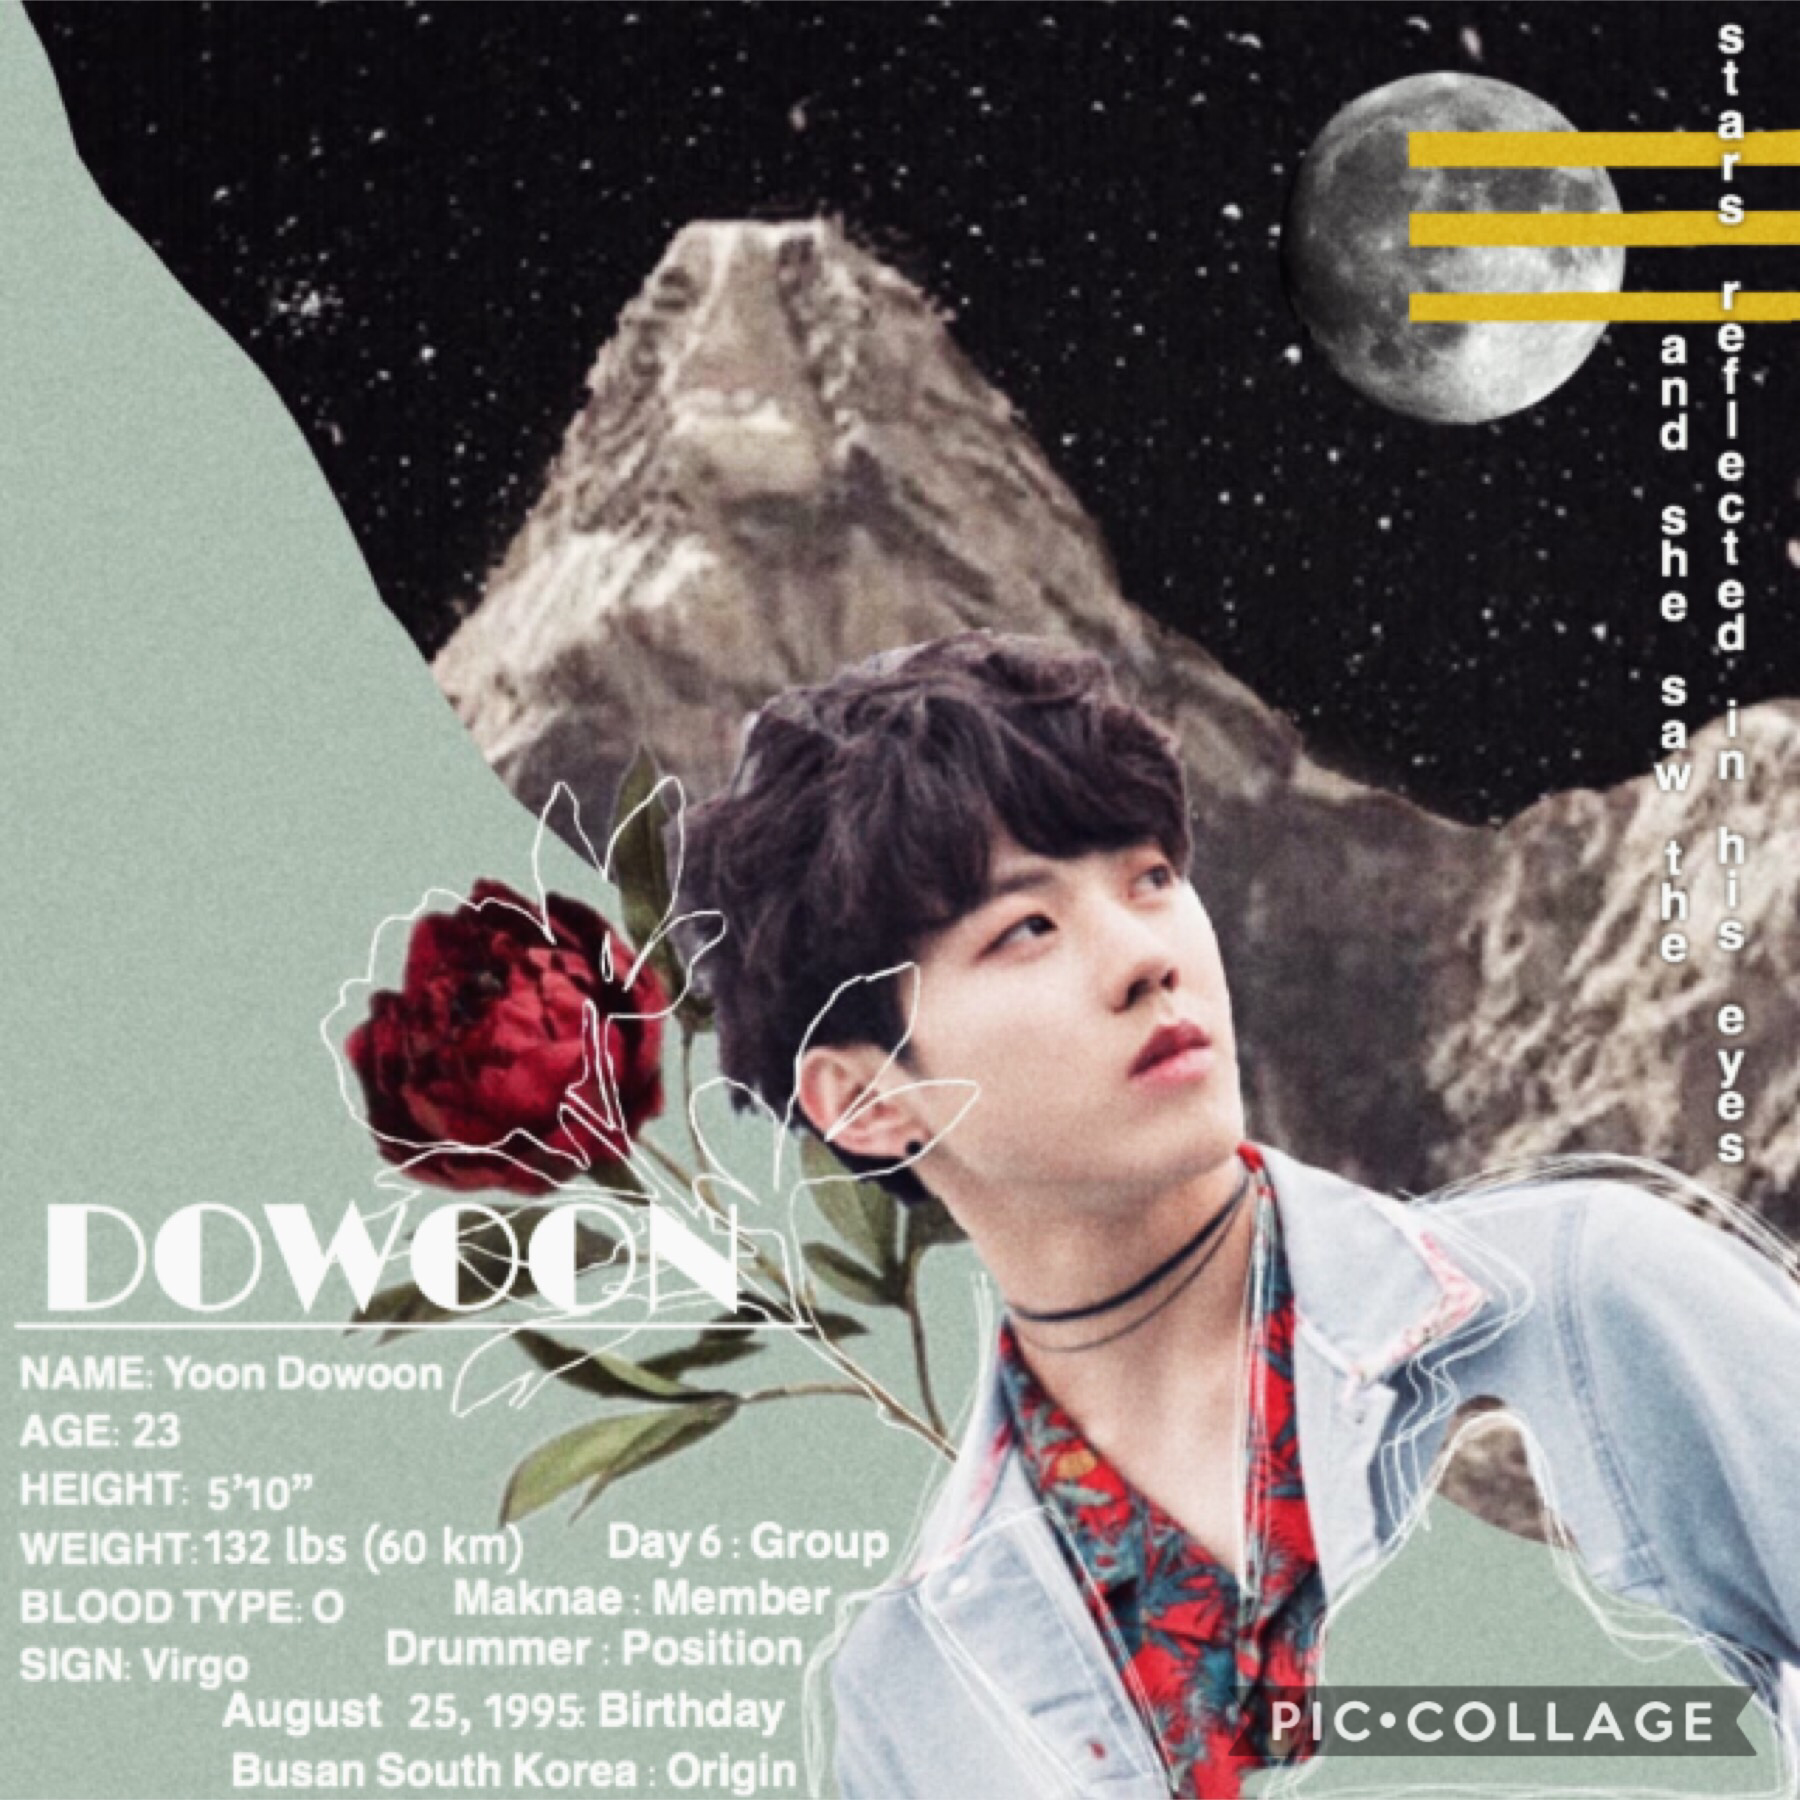 🍚🍚hIGH rICE🍚🍚 [qotd: m&ms or skittles? aotd: skittles all the way] •••  Ahhhh i hope the amount of edits i post isn't annoying😬😬😬 Ugh Dowoon makes me fluffy inside uwu hope y'all r doing amazing💞